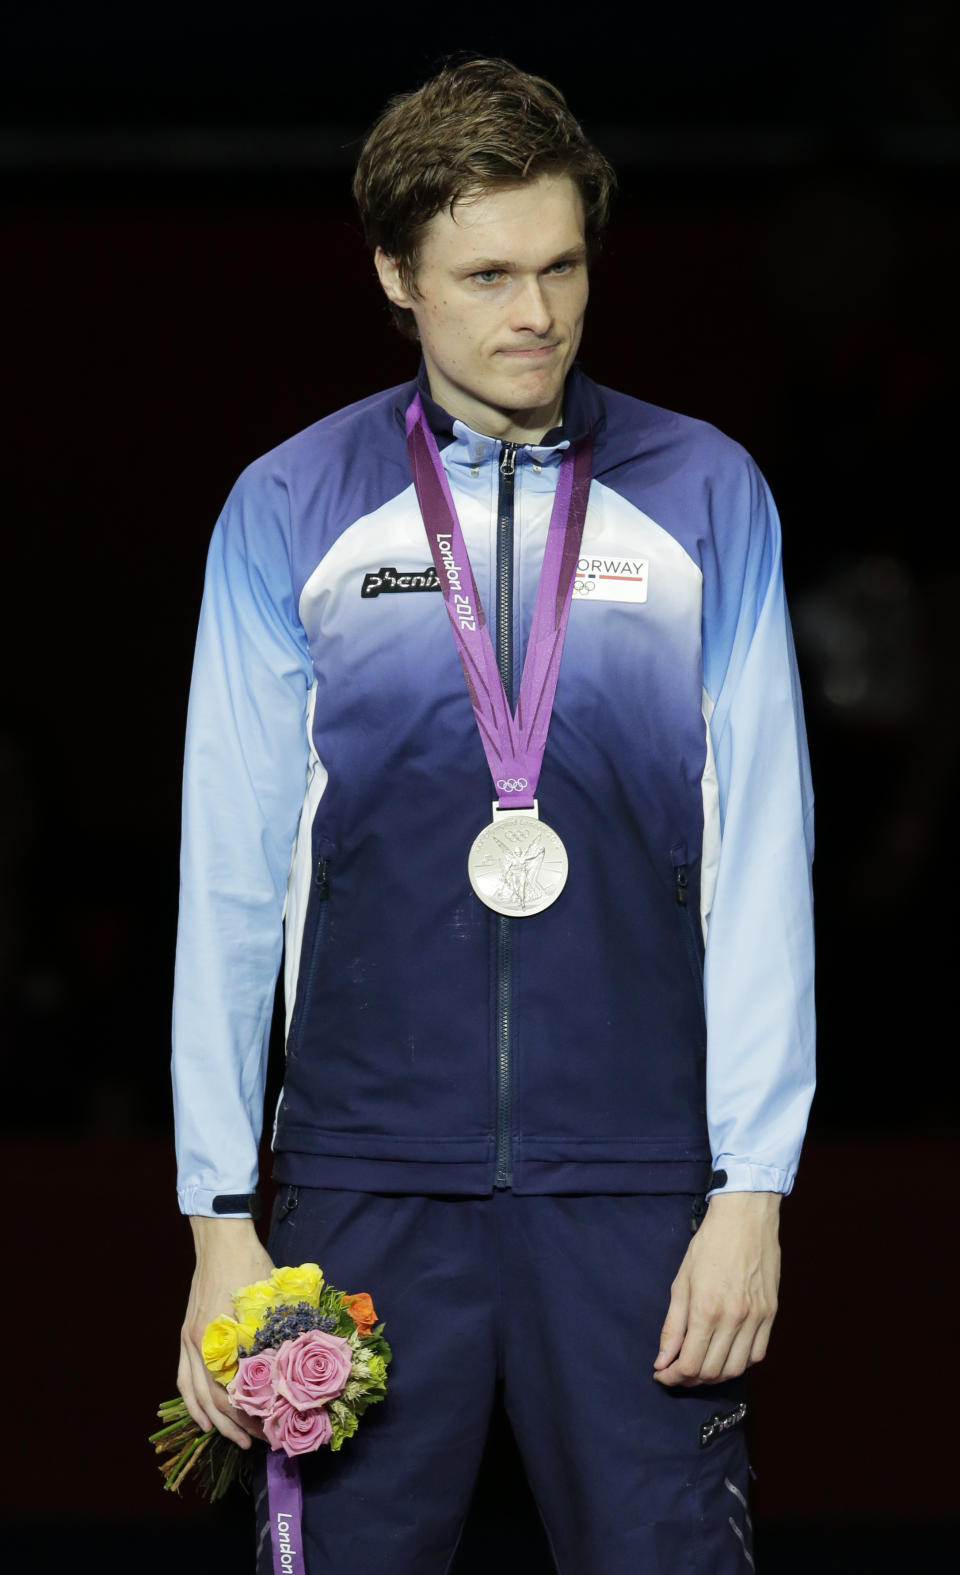 Norway's Bartosz Piasecki stands on the victory stand after winning the silver medal in men's individual epee fencing competition at the 2012 Summer Olympics, Wednesday, Aug. 1, 2012, in London.(AP Photo/Dmitry Lovetsky)